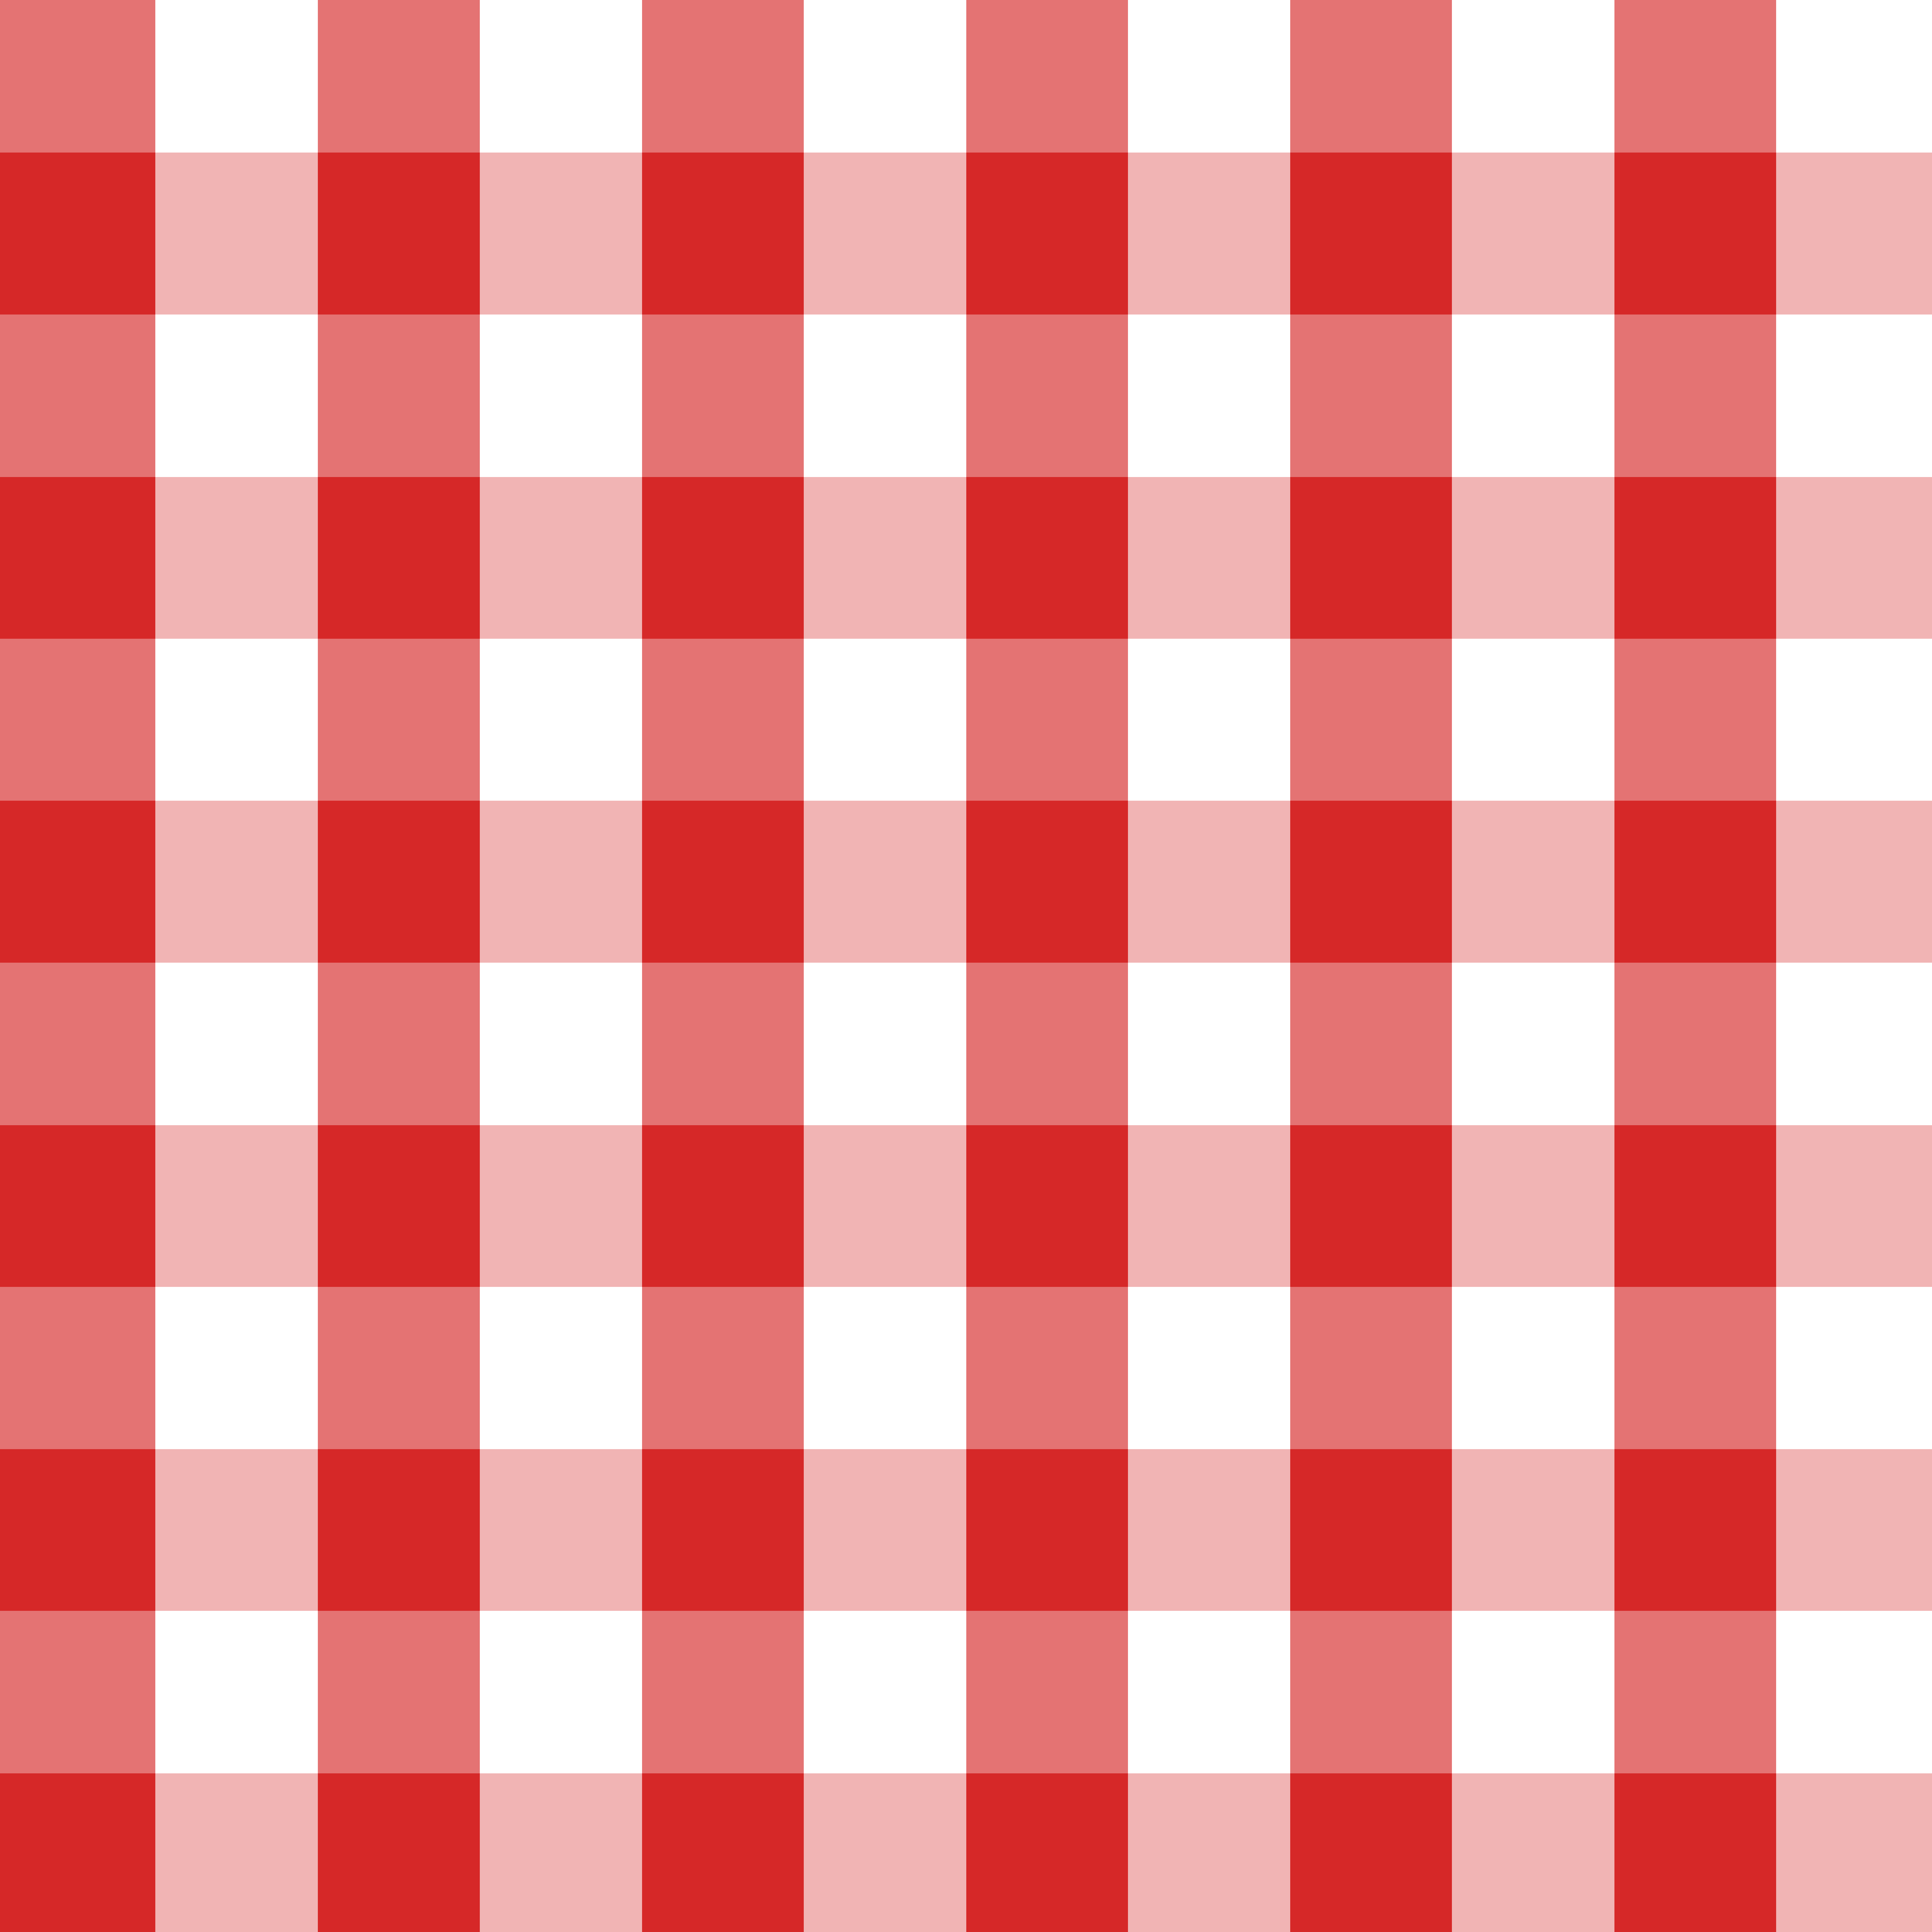 Red And White Picnic Cloth Gingham Party Red Tablecloth Free Clip Art